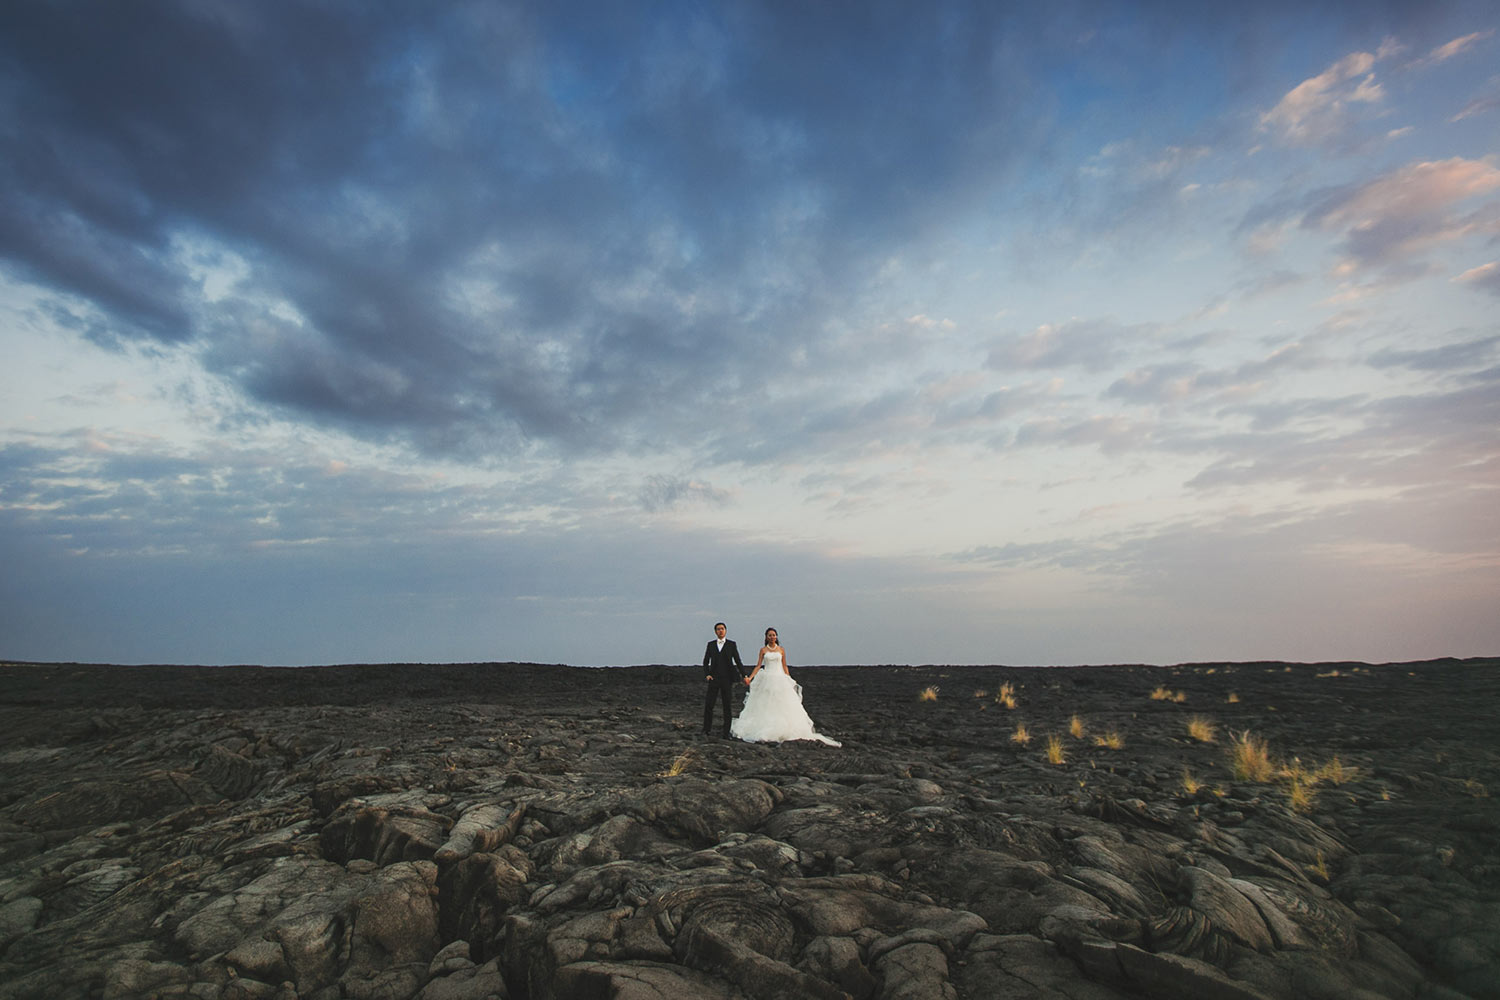 Kona lava field wedding photo on the Big Island